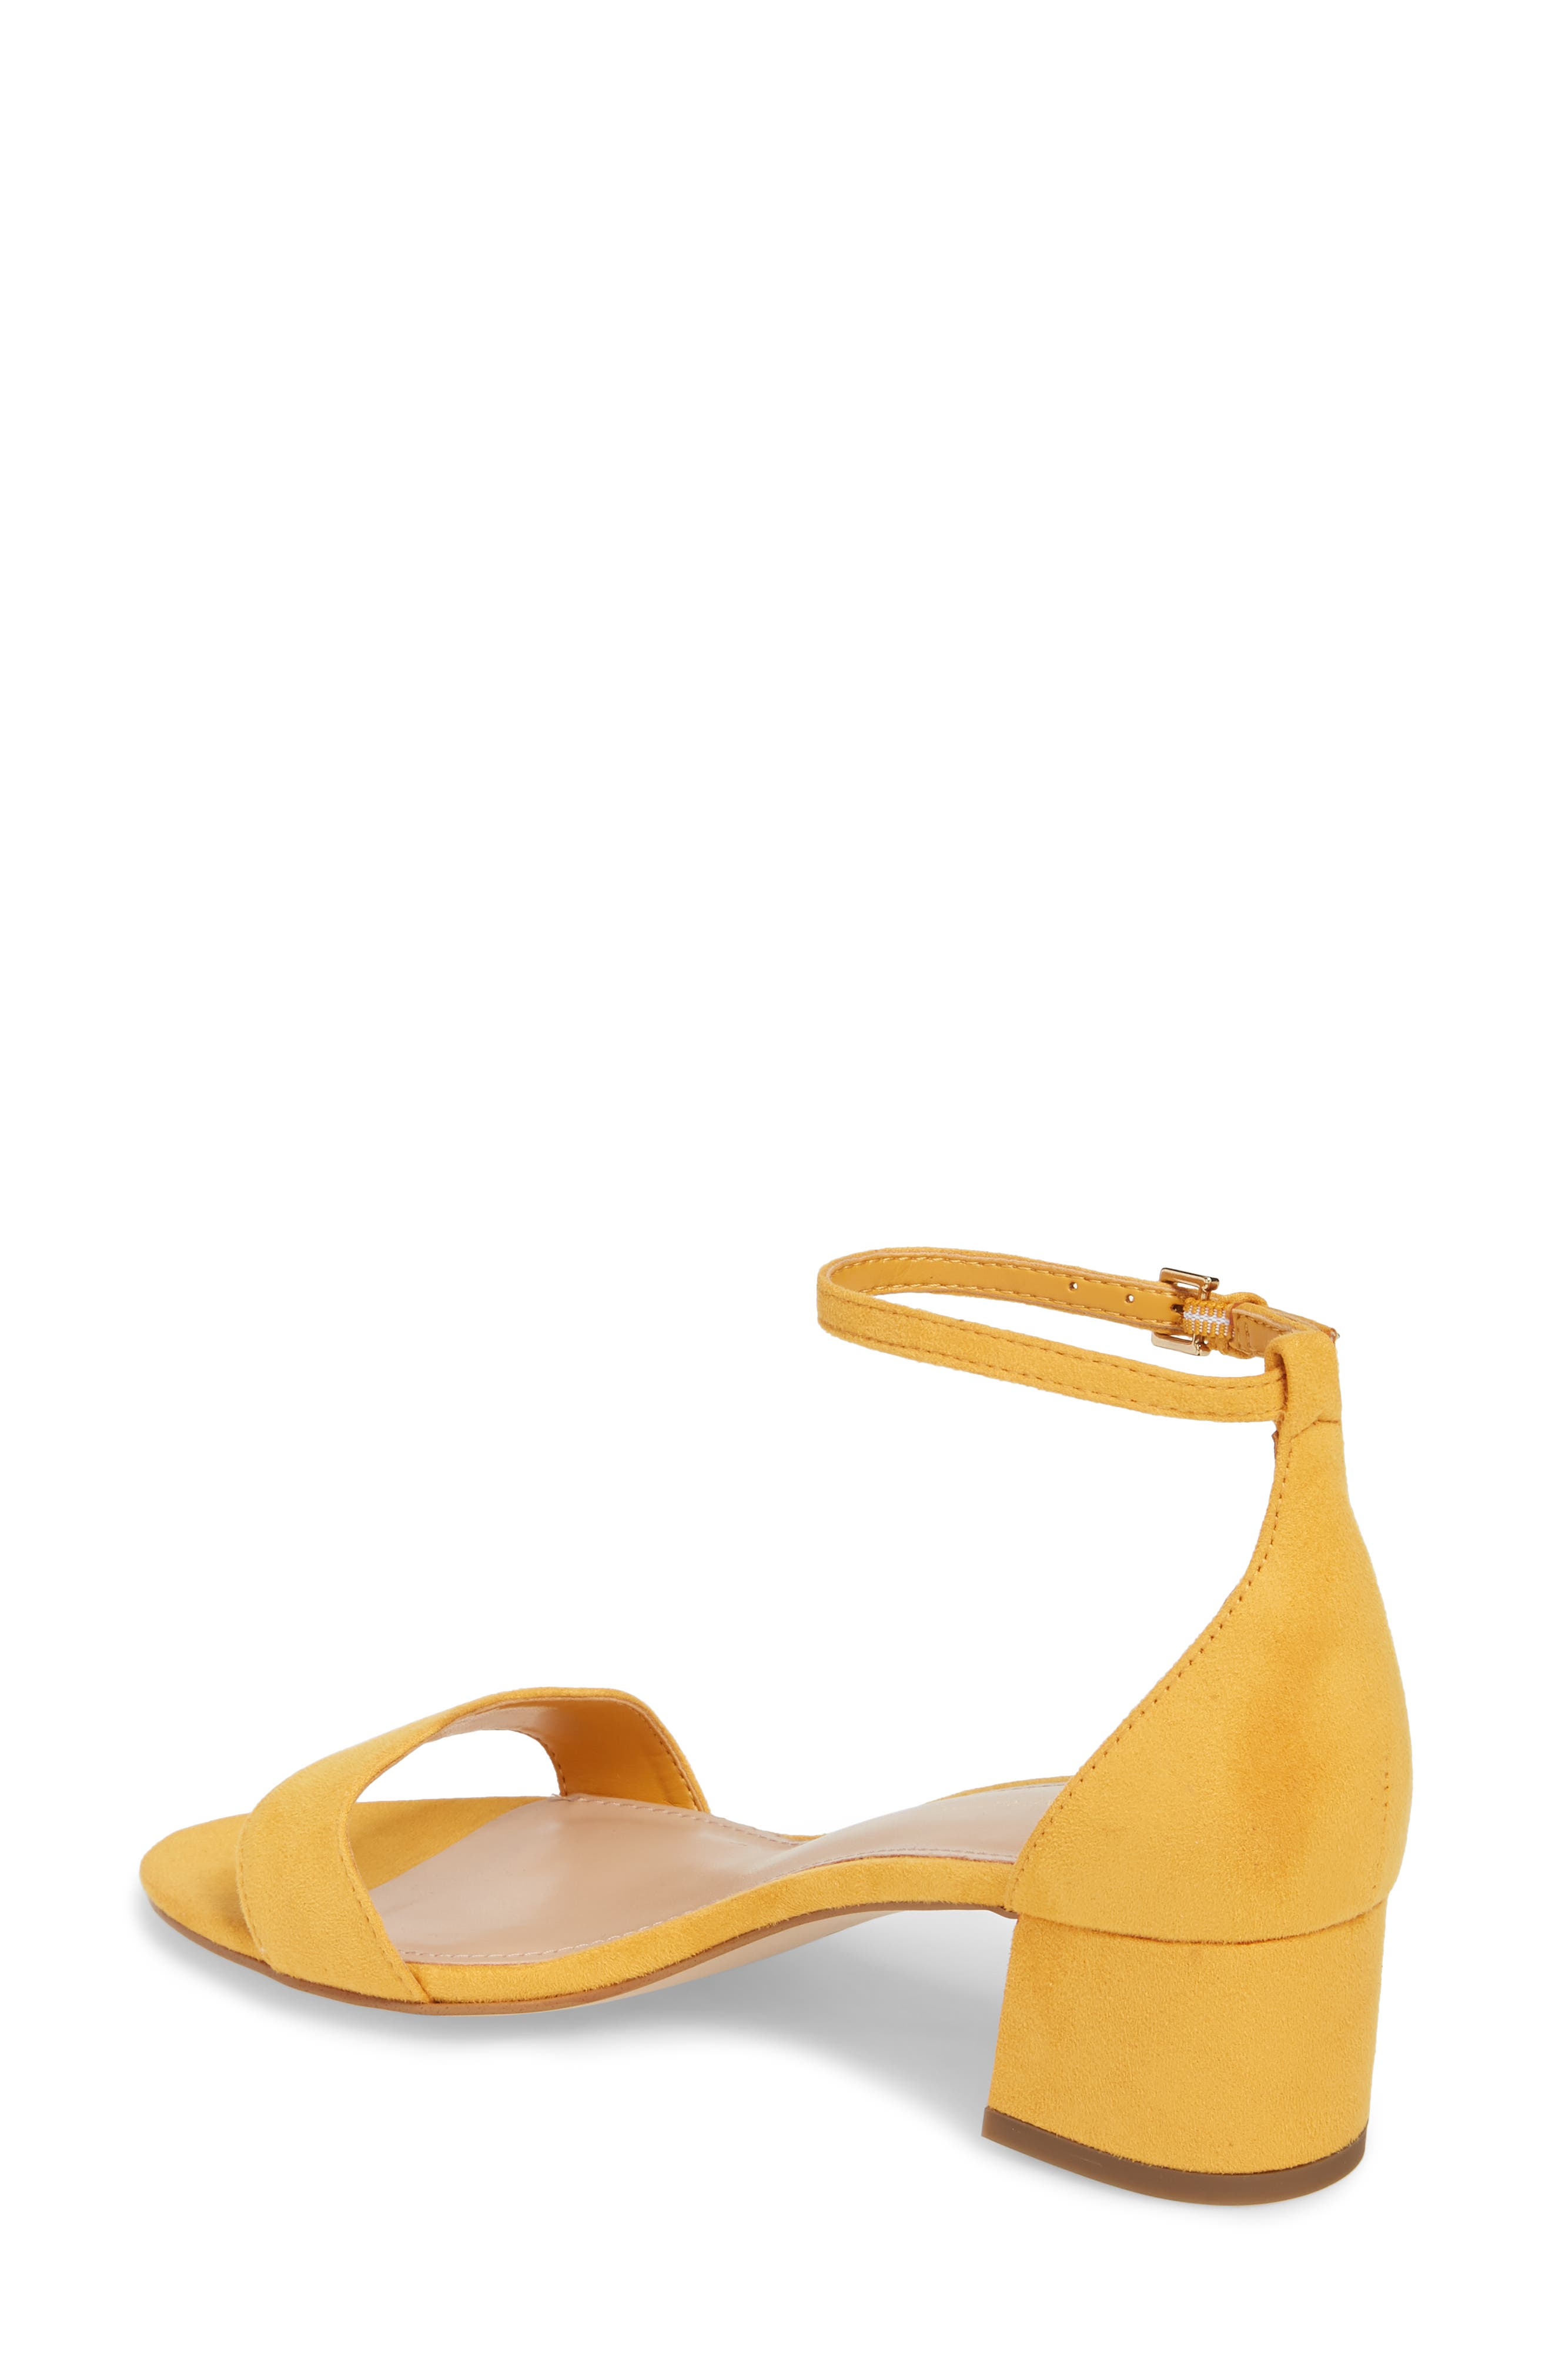 Farlyn Ankle Strap Sandal,                             Alternate thumbnail 2, color,                             Marigold Faux Leather